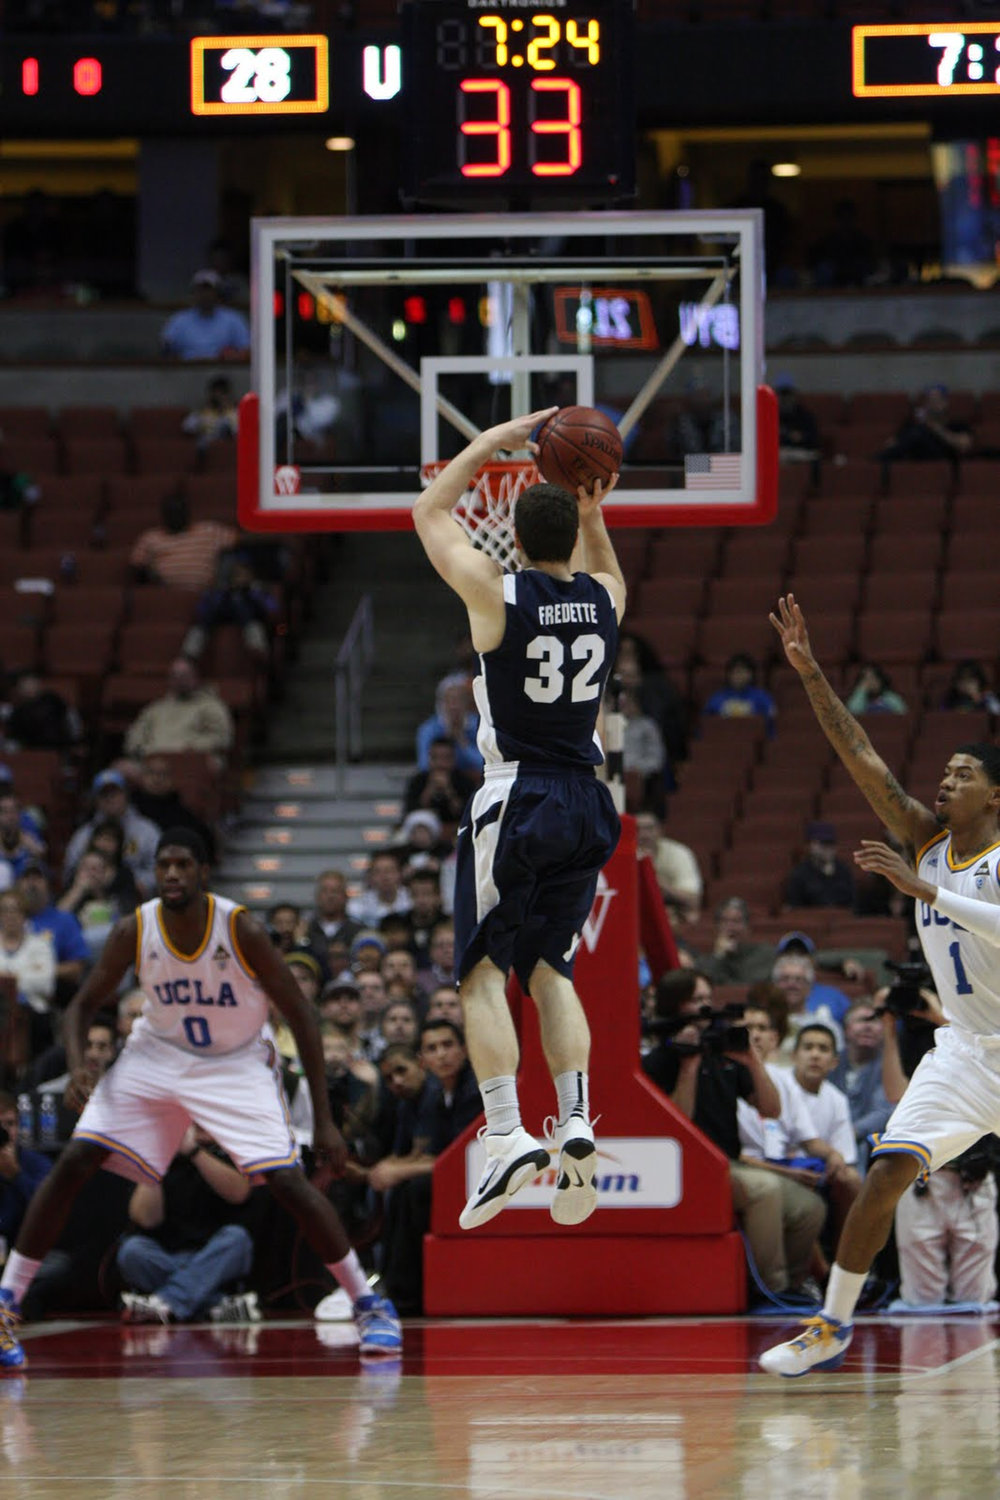 Jimmer Fredette takes a three point jumpshot for BYU at the John Wooden Classic. ( TheDailySportsHerald /Flickr, Creative Commons)